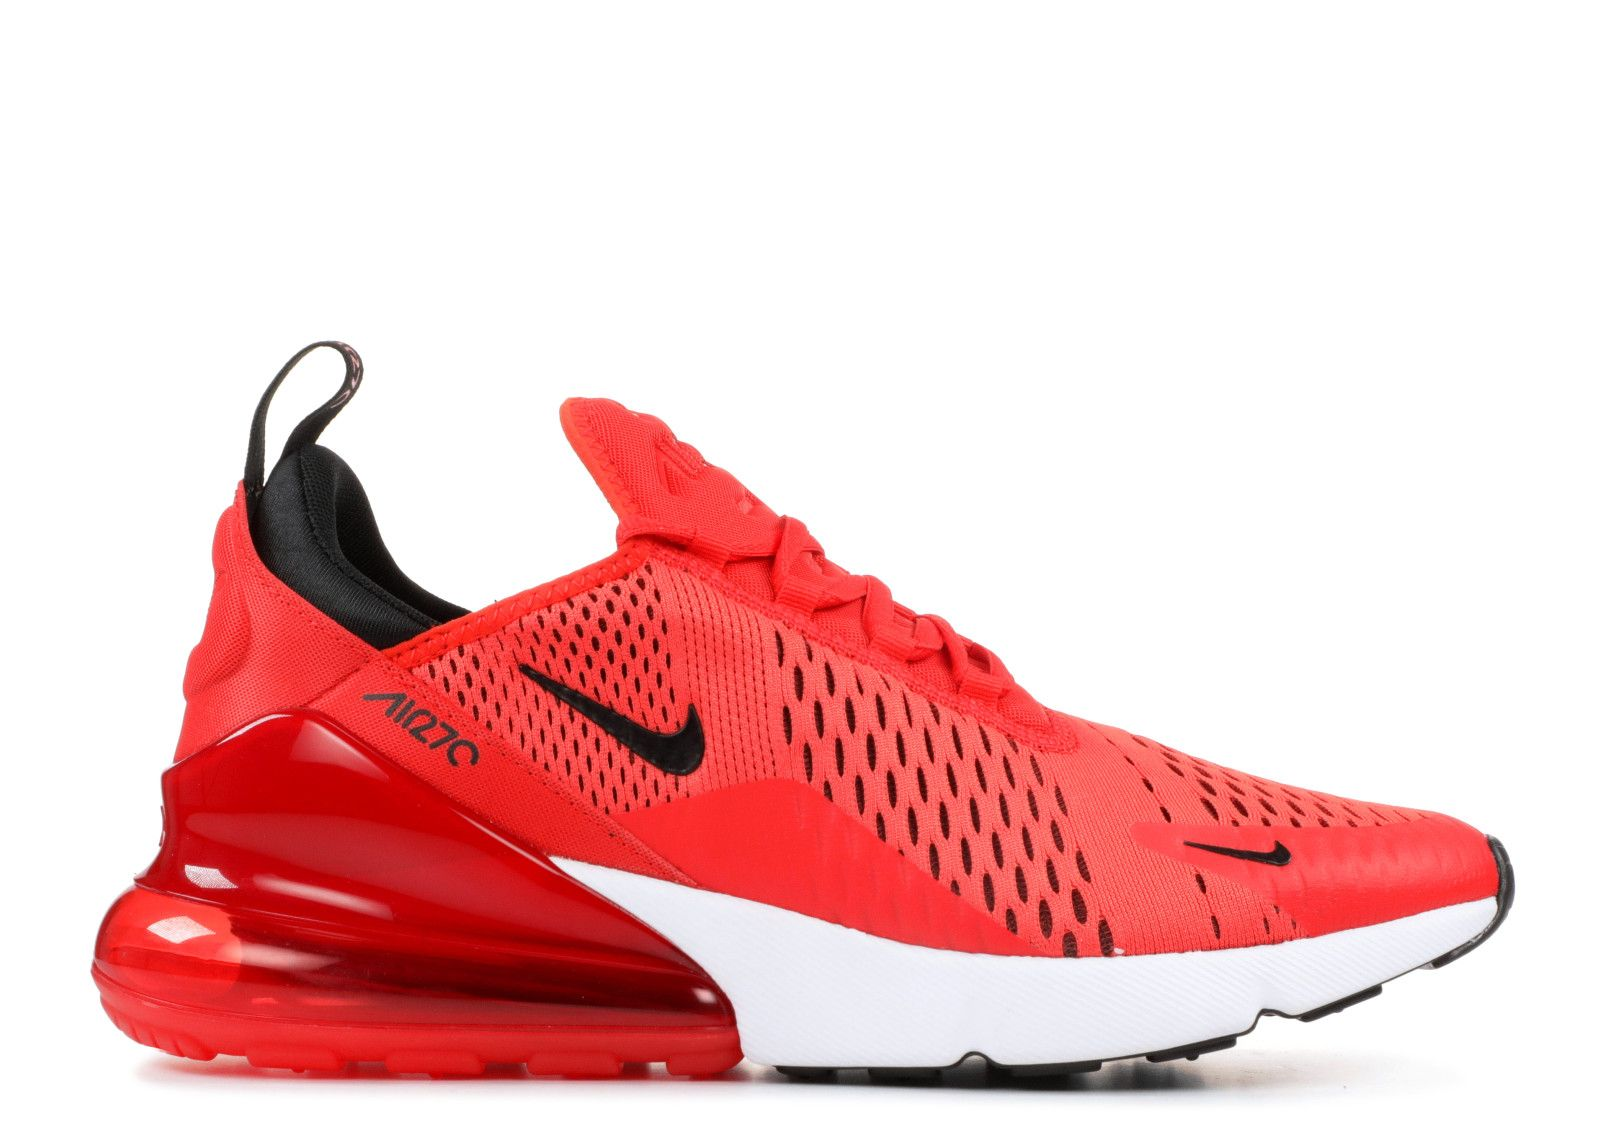 Air Max 270 Habanero Red Nike Shoes Air Max Red Nike Shoes